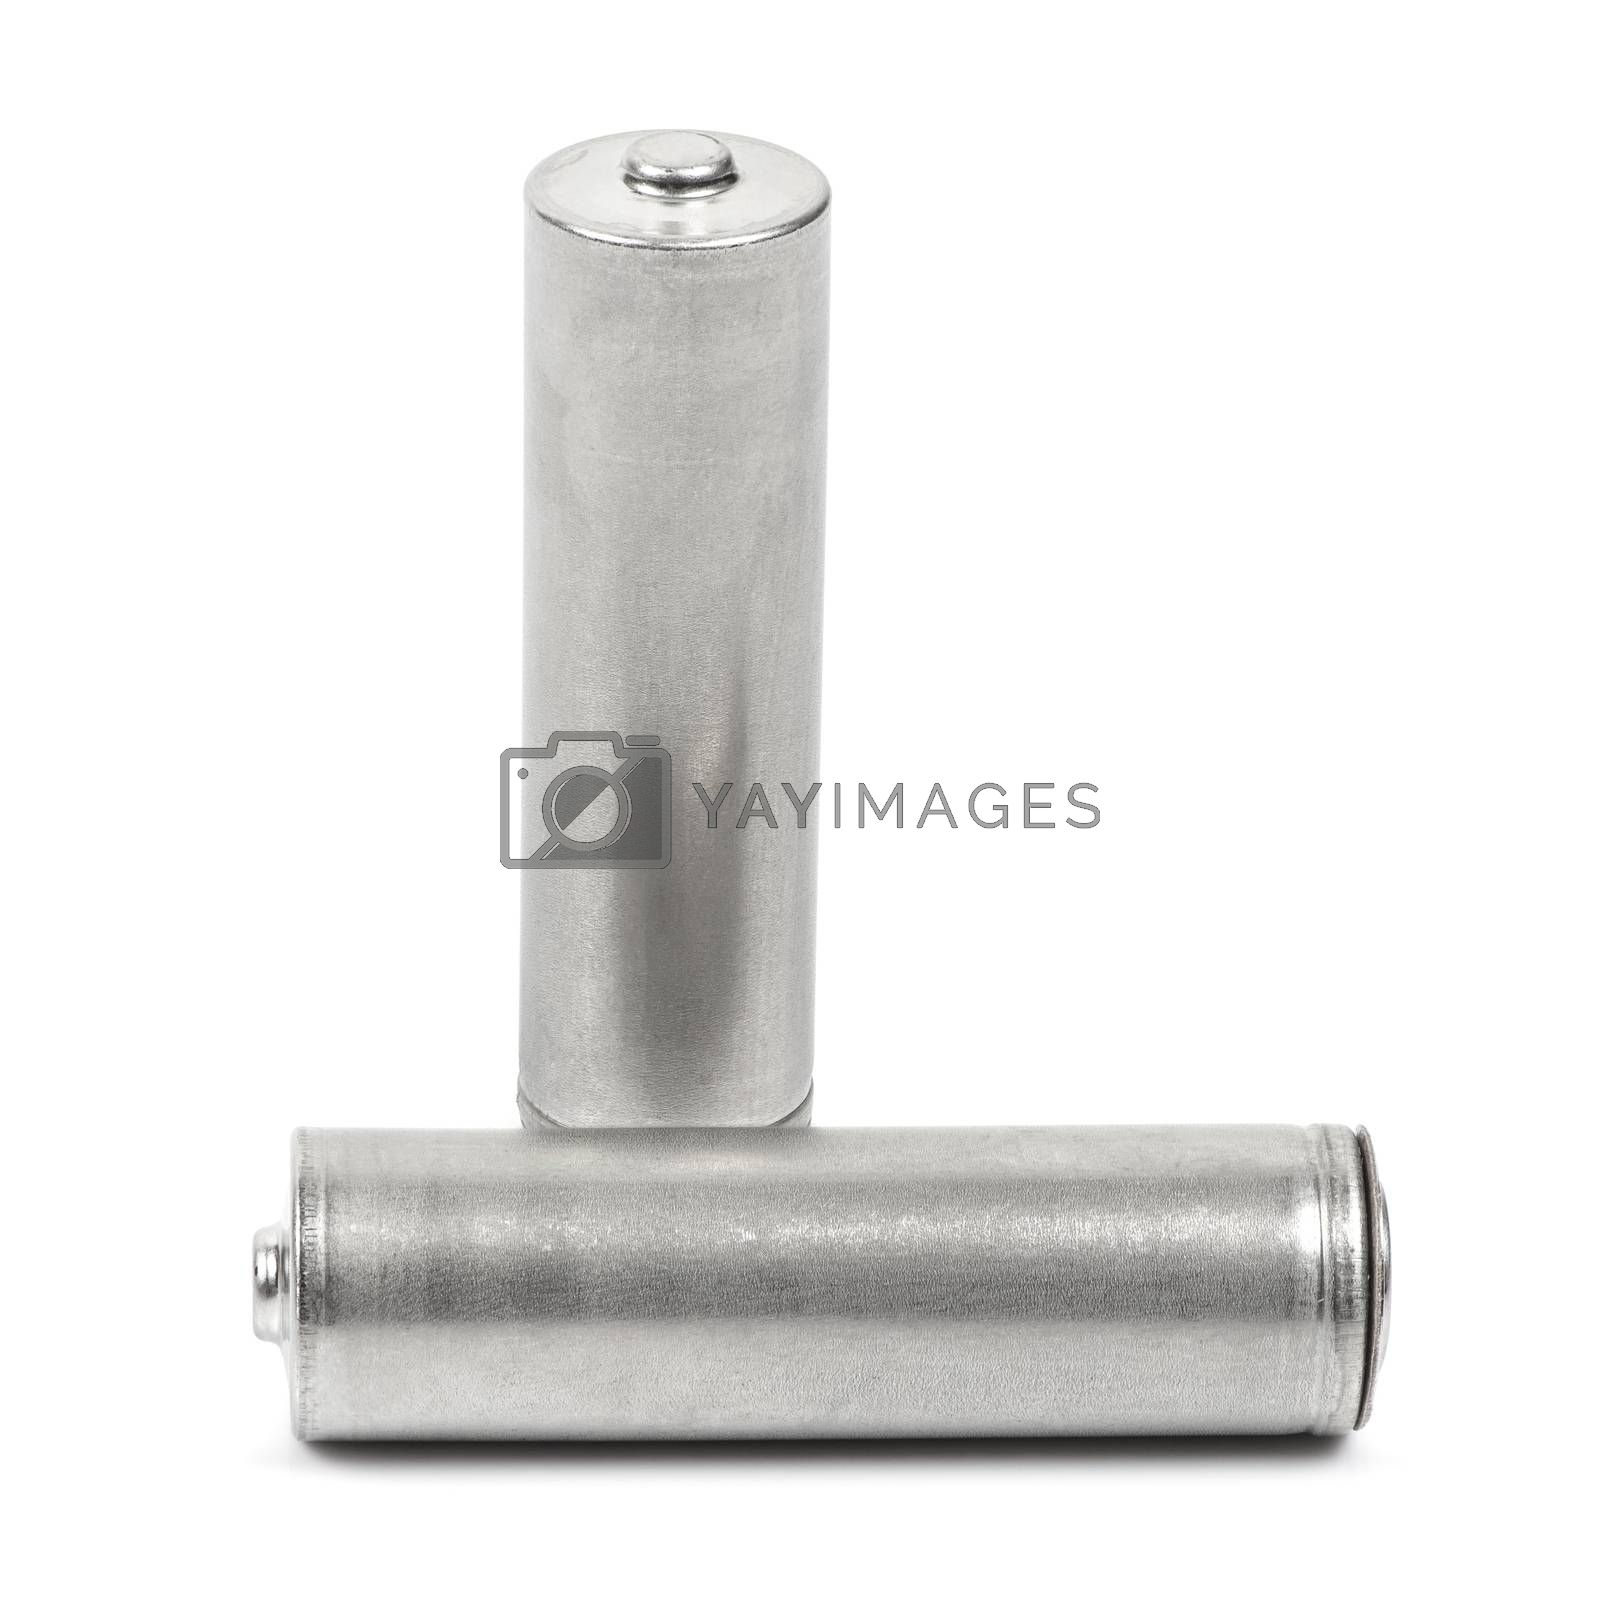 Two AA size batteries on white background with clipping path